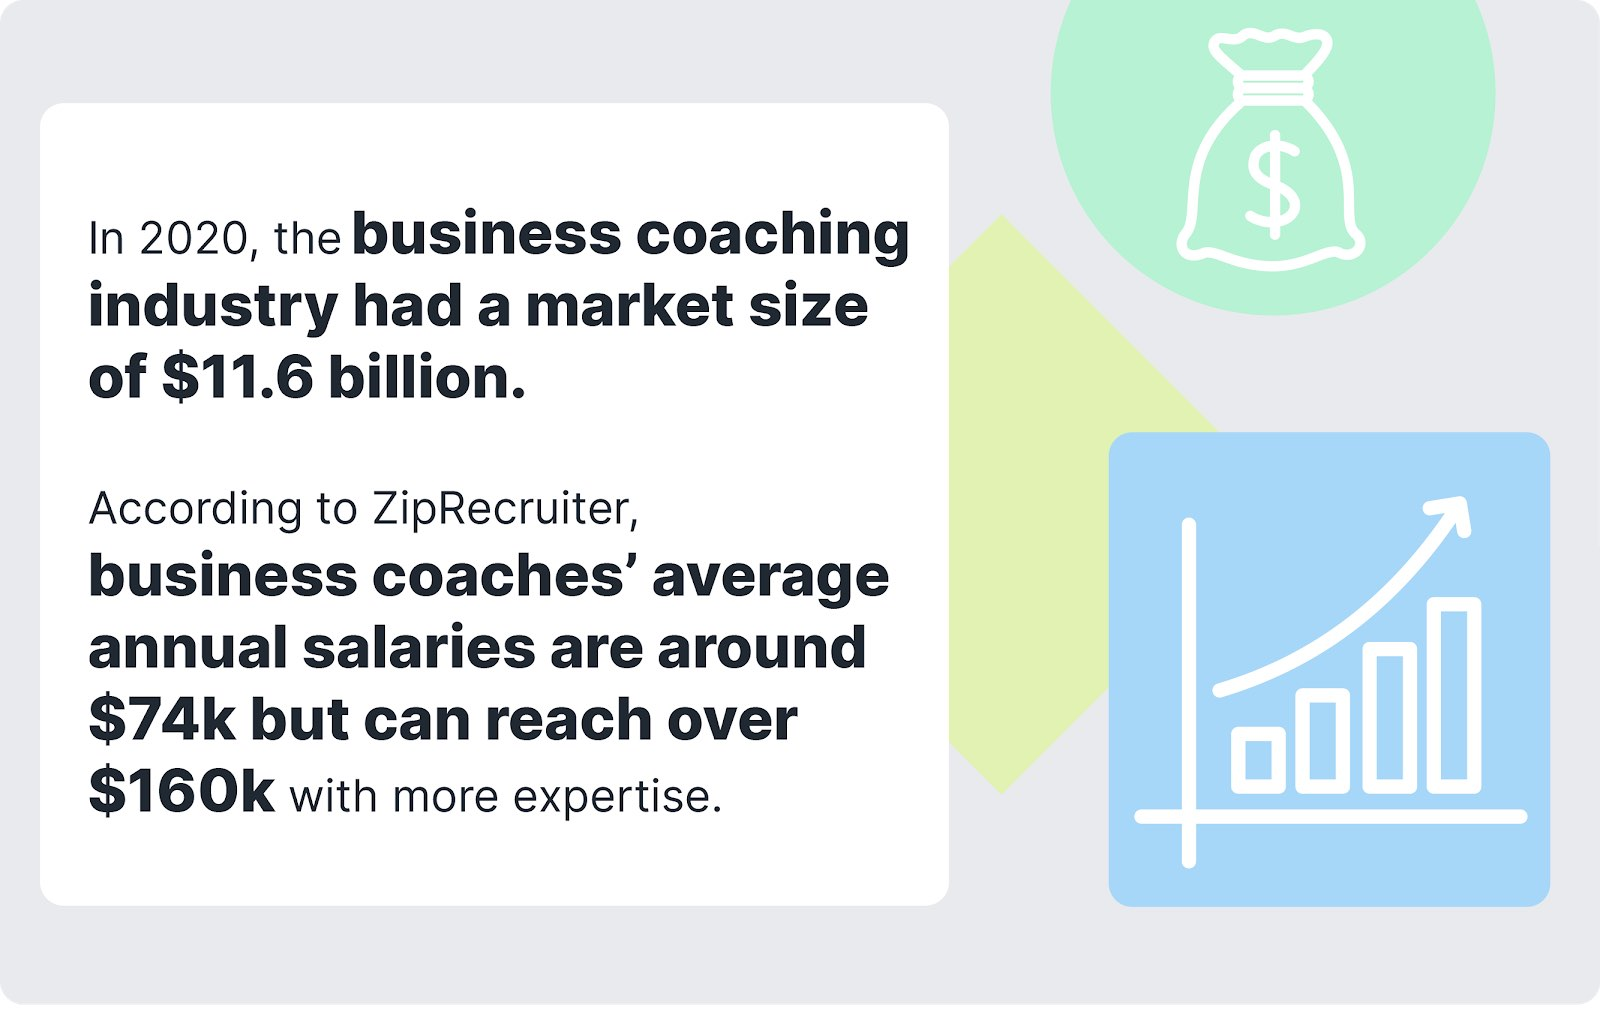 Statistics on business coaching industry being worth $11.6 billion in 2020 and annual salaries for business coaches between $74k - $160k